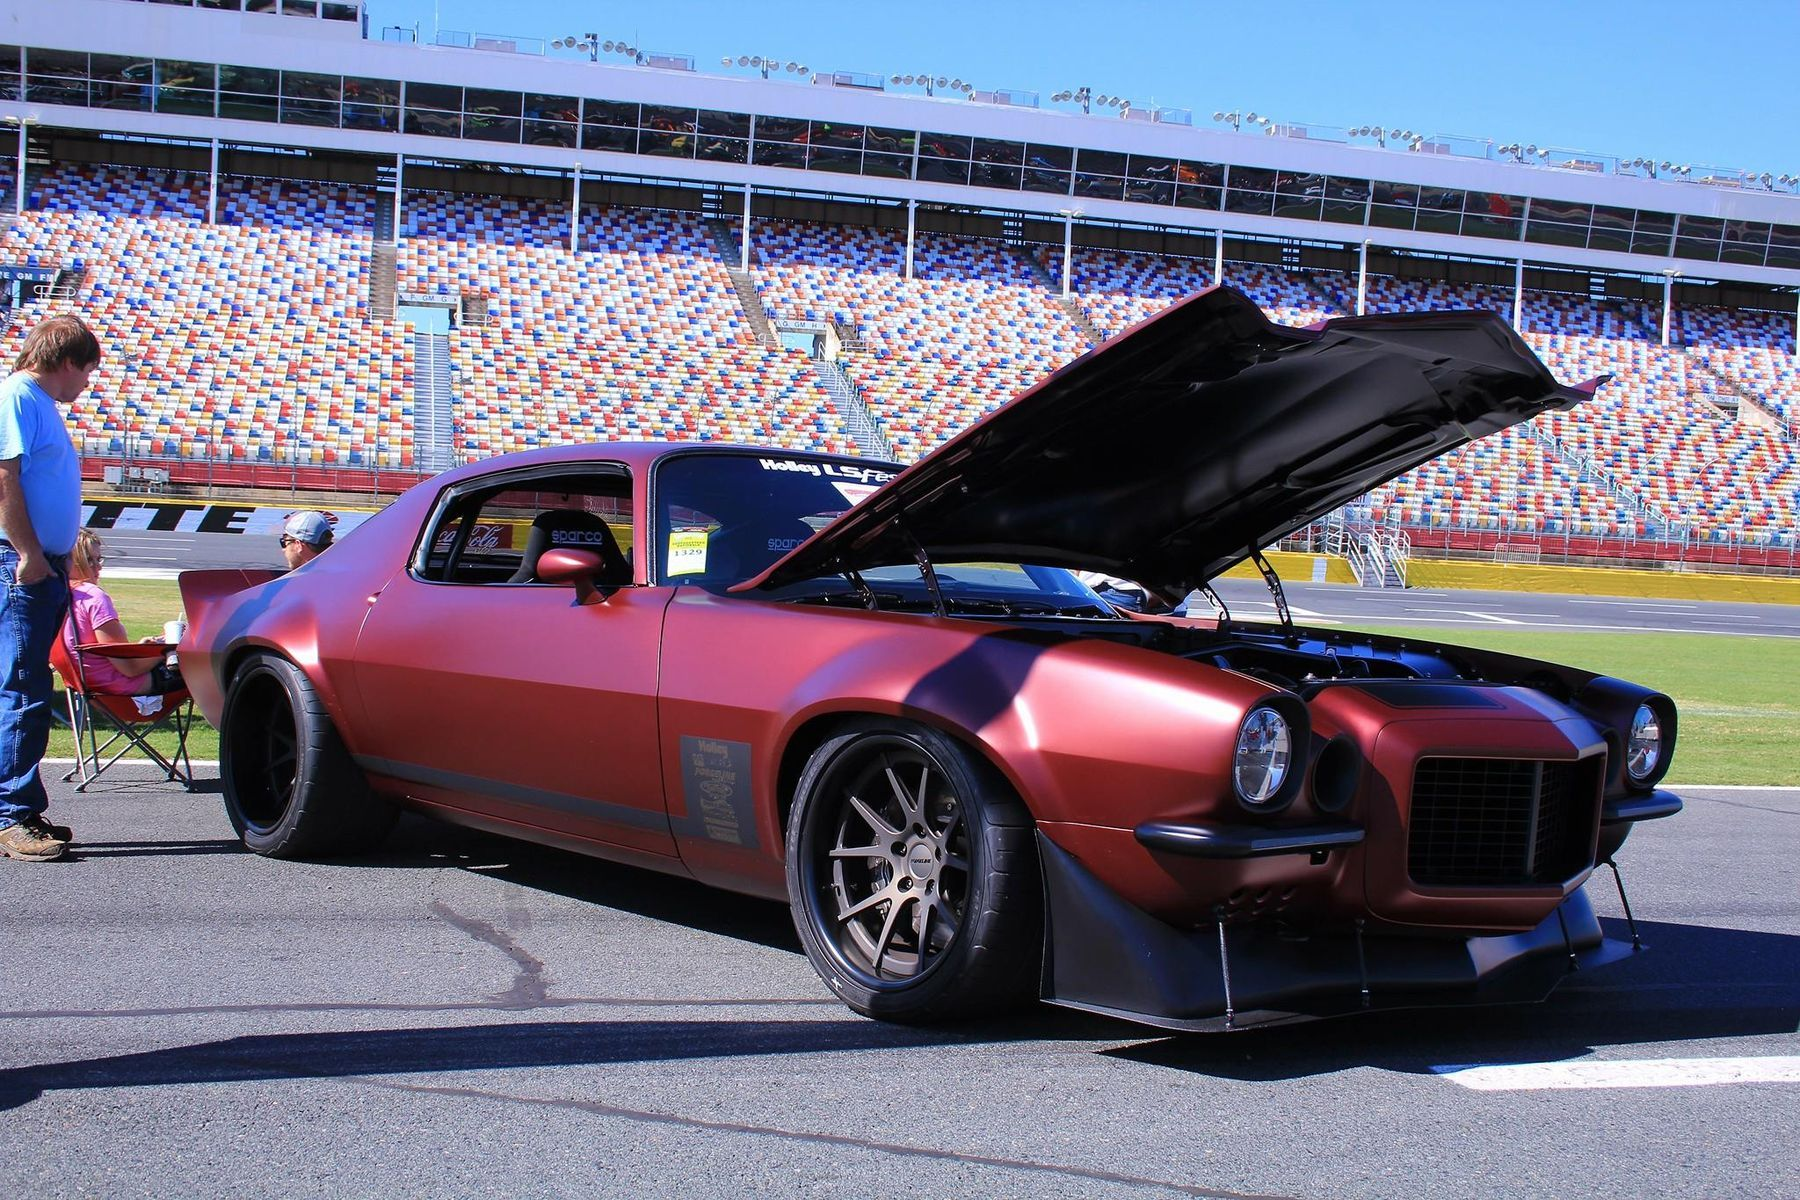 1971 Chevrolet Camaro | Paul VanNus' Dutchboys Hotrods '71 Camaro on Forgeline GA3C Wheels Earns Builders Choice Award at Goodguys Charlotte